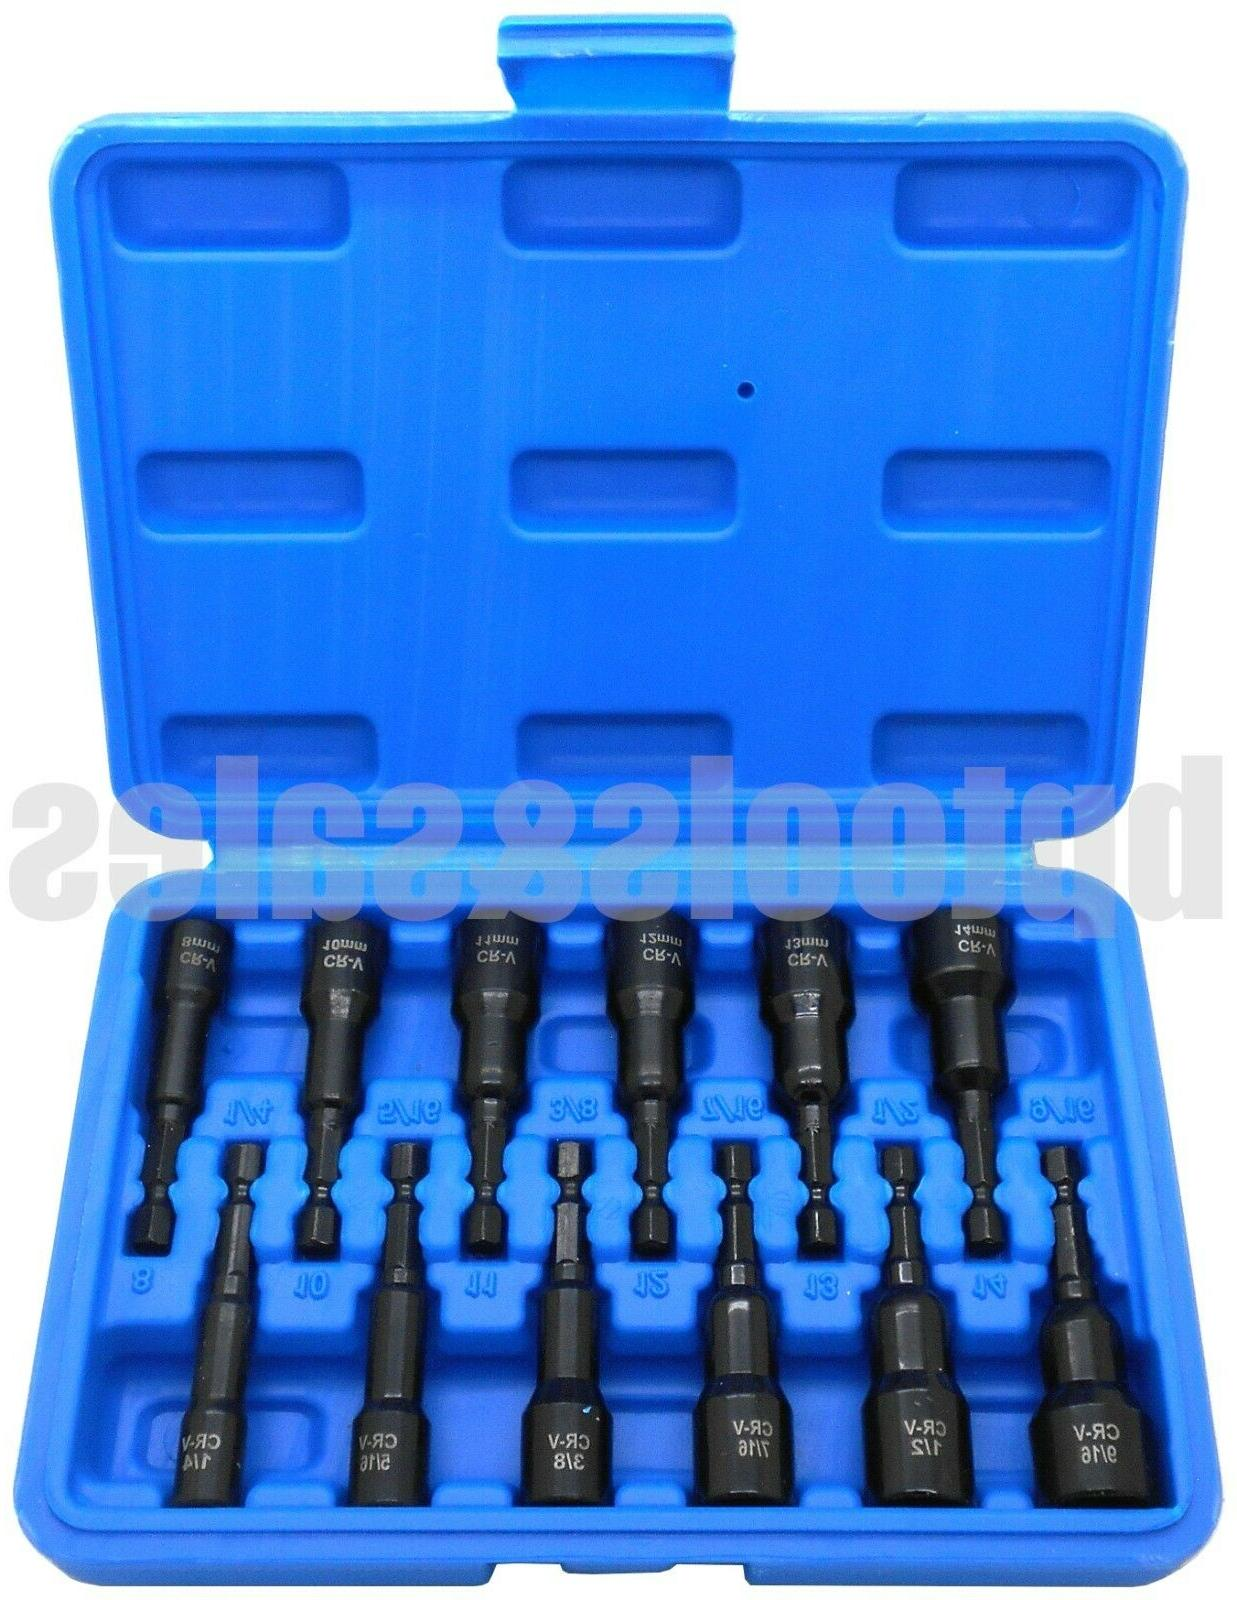 12pc magnetic nut setter metric and sae